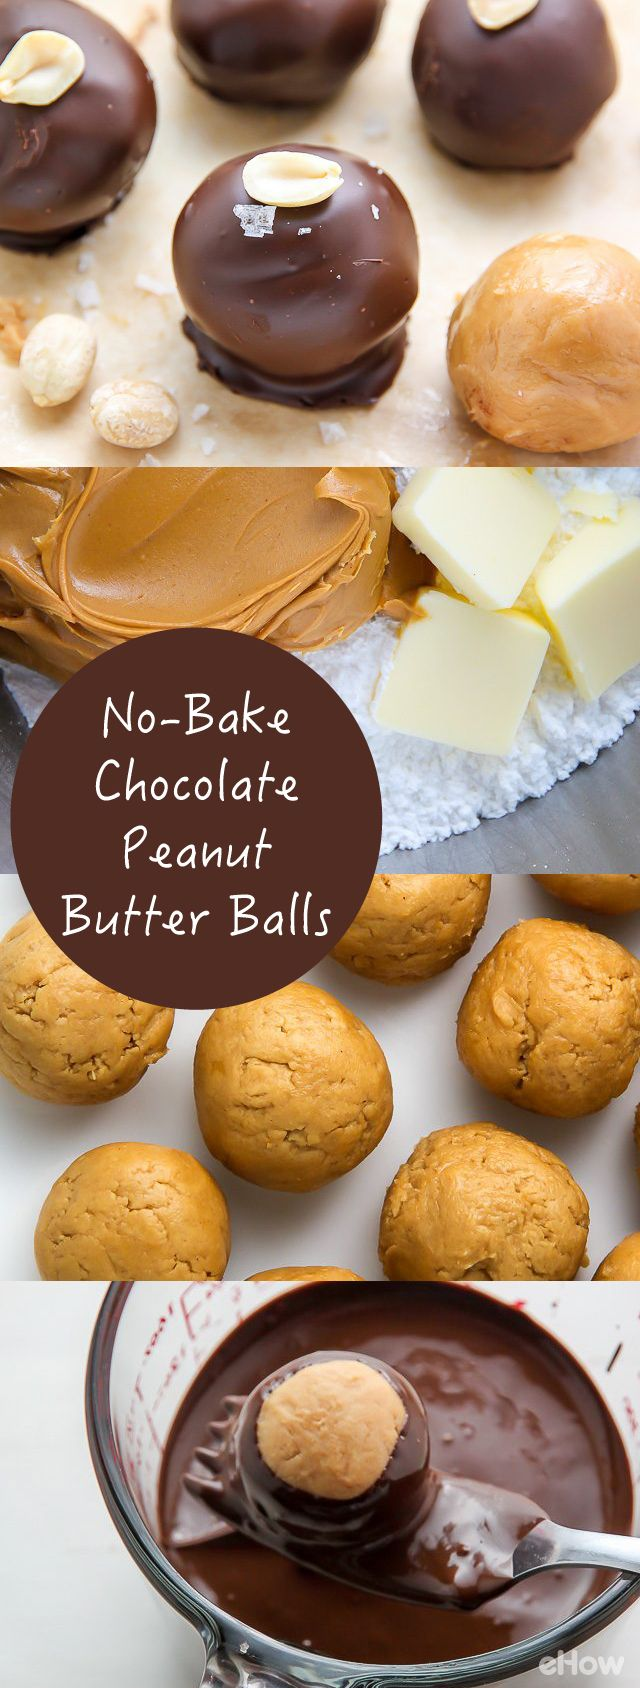 No-bake chocolate peanut butter balls!!!  Easy, delicious, chocolatey and peanut butter-y. The perfect little desserts for any occasion. The fact that they're no-bake and make-ahead friendly just puts this treat over the top. http://www.ehow.com/how_3391208_make-no-bake-chocolate-peanut.html?utm_source=pinterest.com&utm_medium=referral&utm_content=freestyle&utm_campaign=fanpage